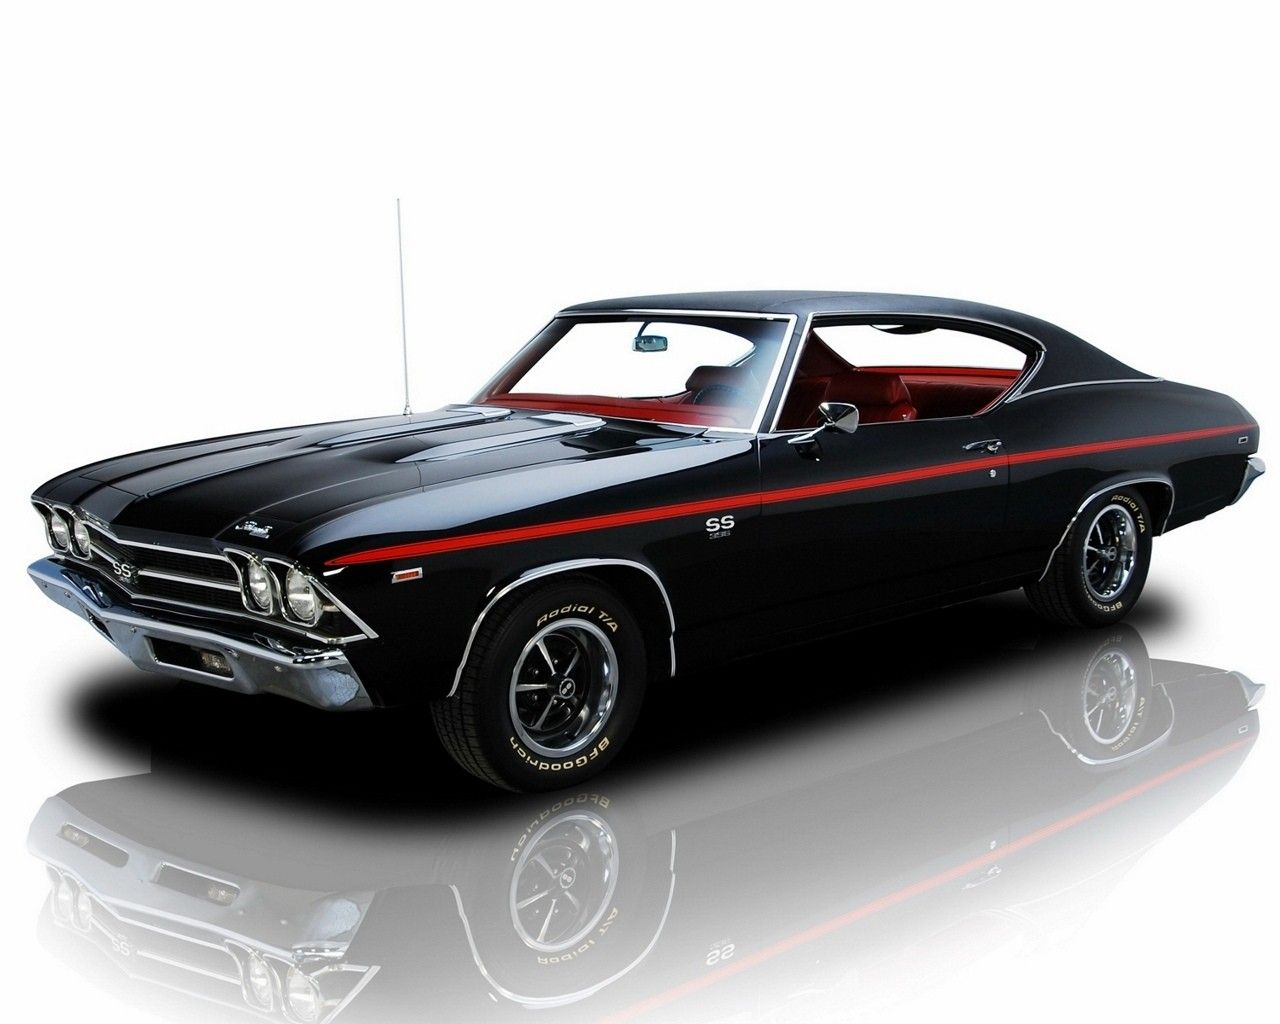 Muscle Car Wallpaper Borders Wallpaper Muscle Car Bordersamerican